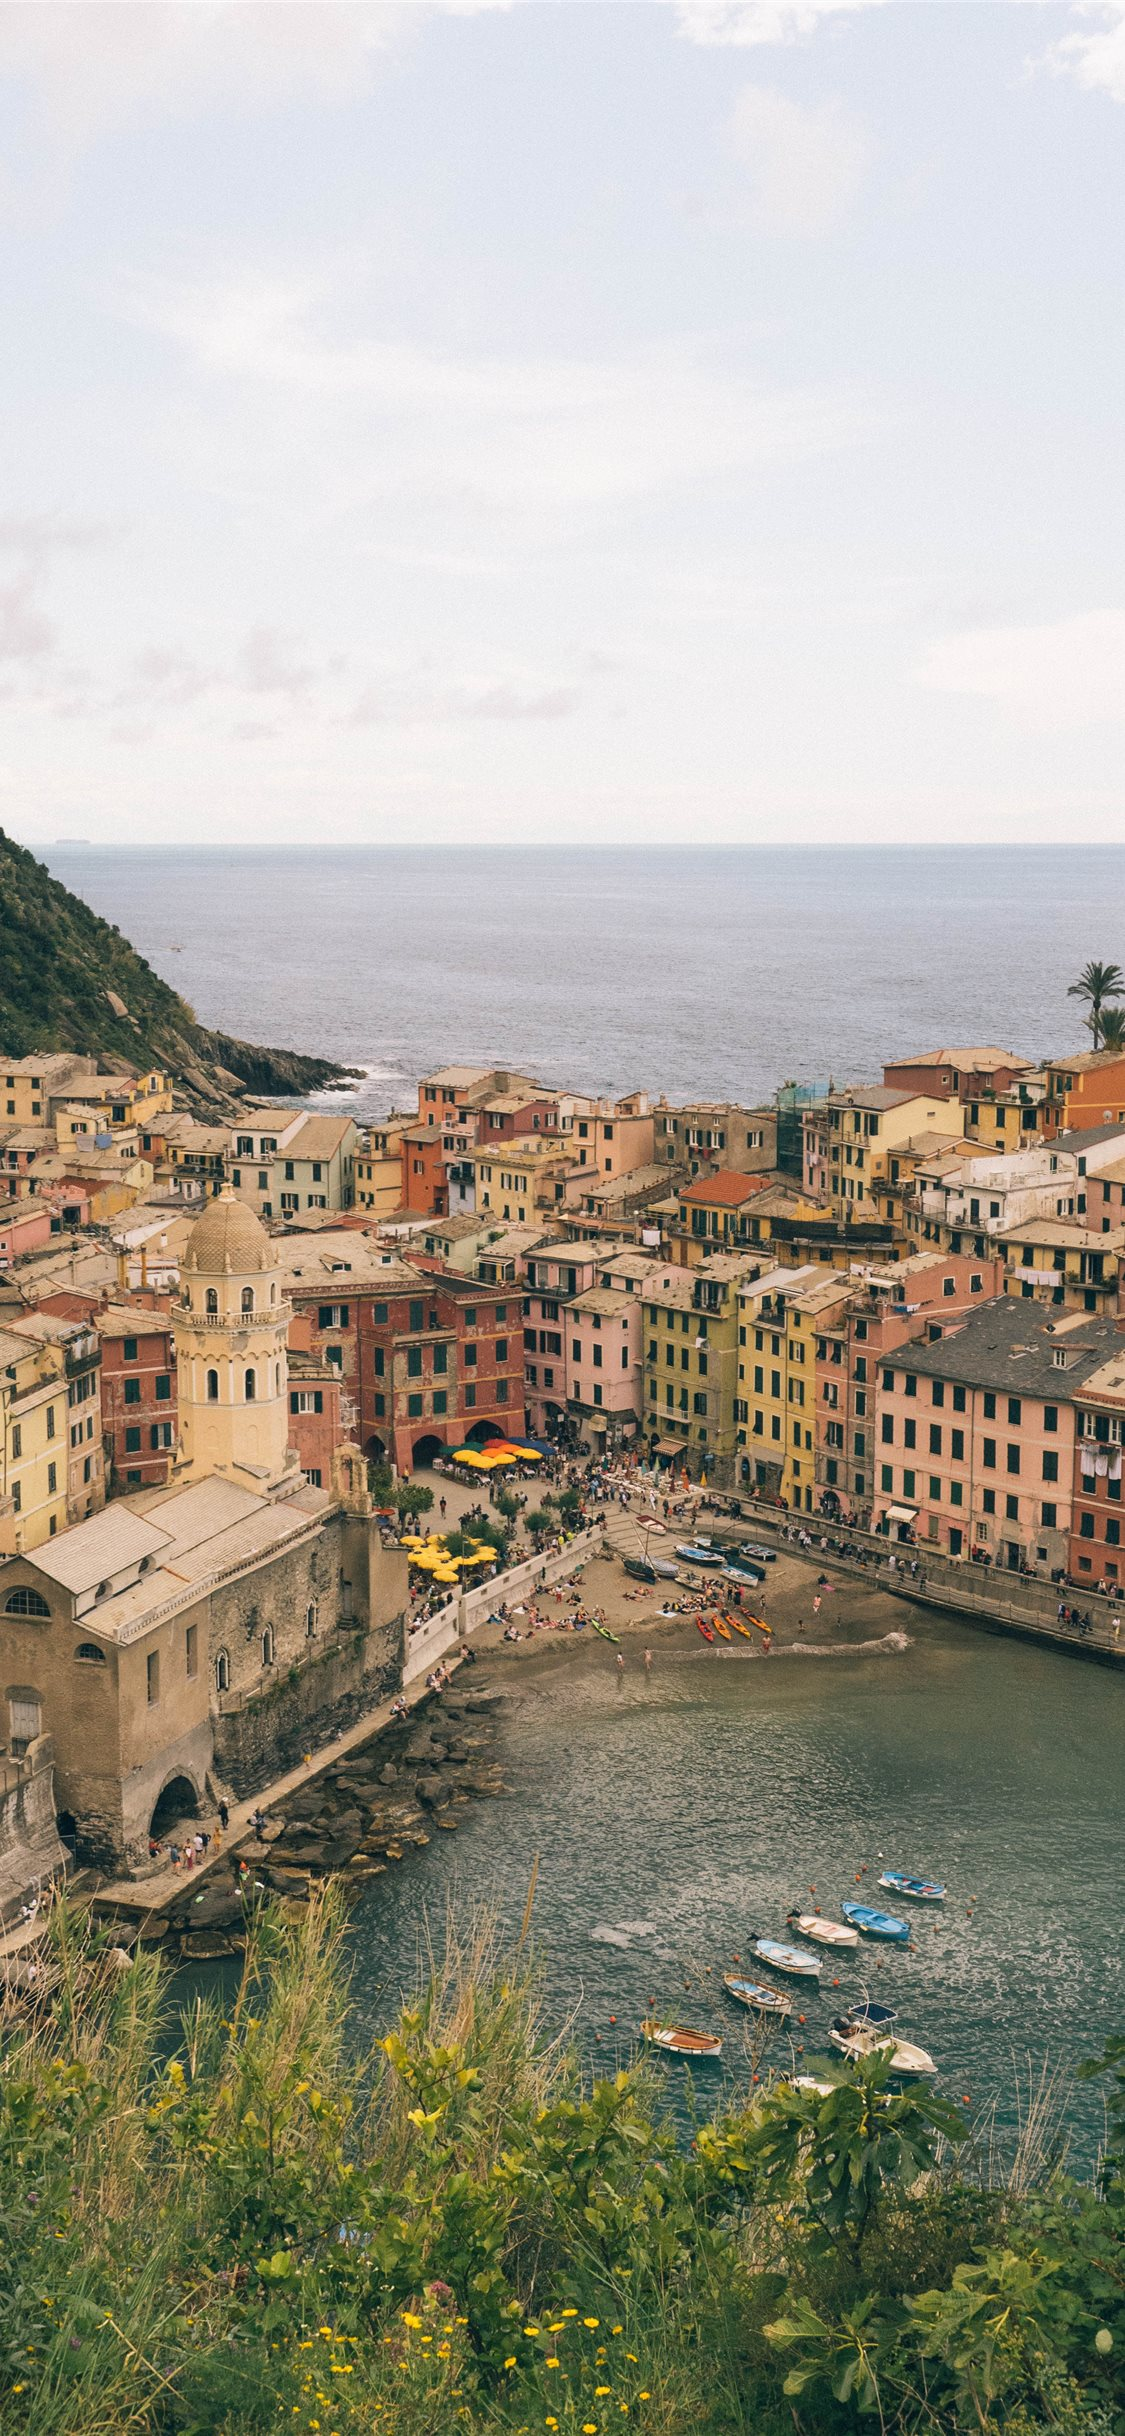 Vernazza Cinque Terre Italy May 2019 Iphone X Wallpapers